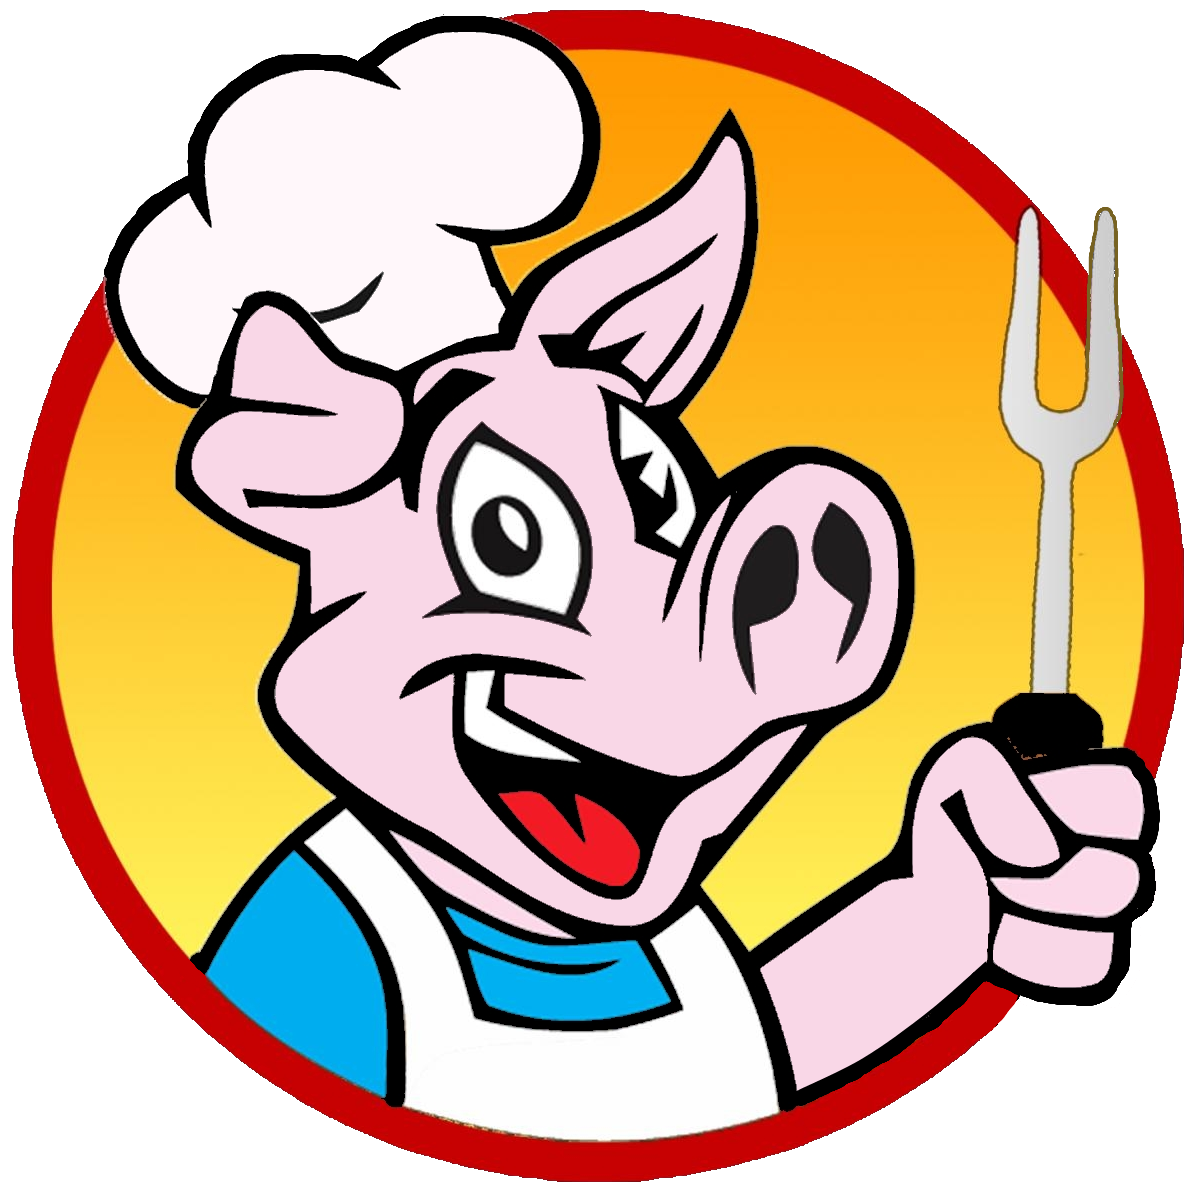 Hungry clipart bbq restaurant. Barbecue pig png transparent